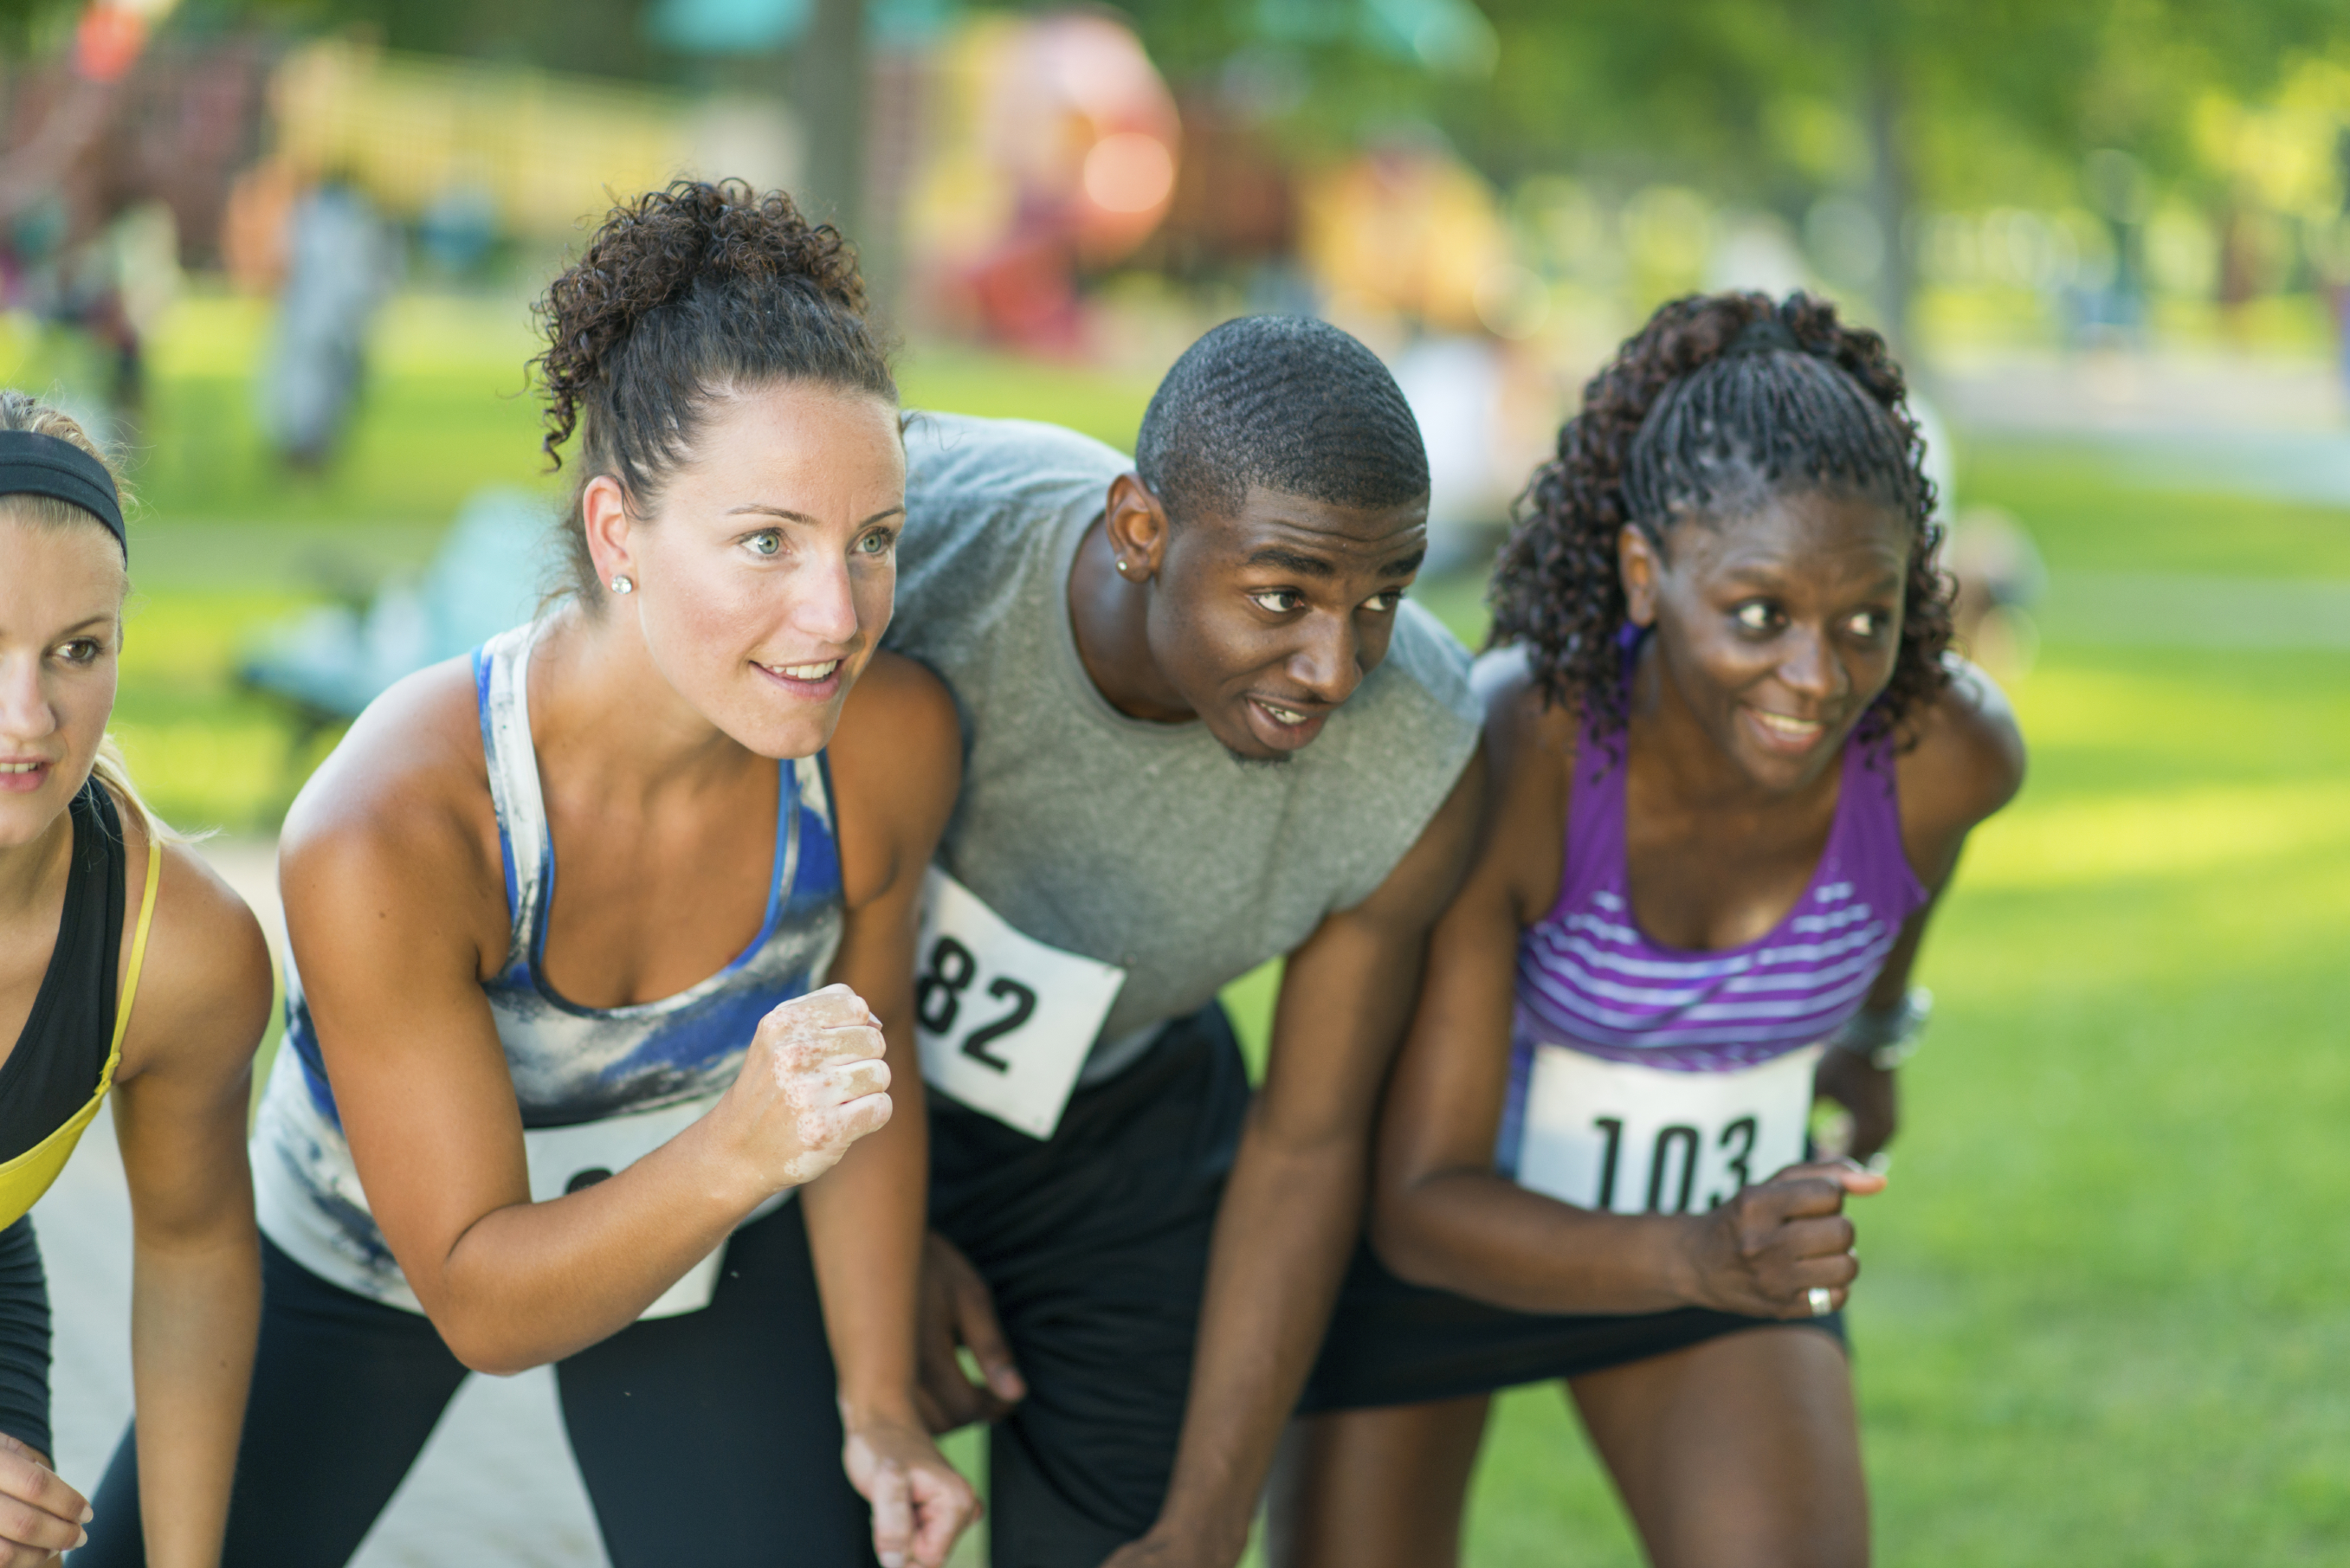 Reliant Medical Group Foundation to Host 5th Annual 5k Charity Race